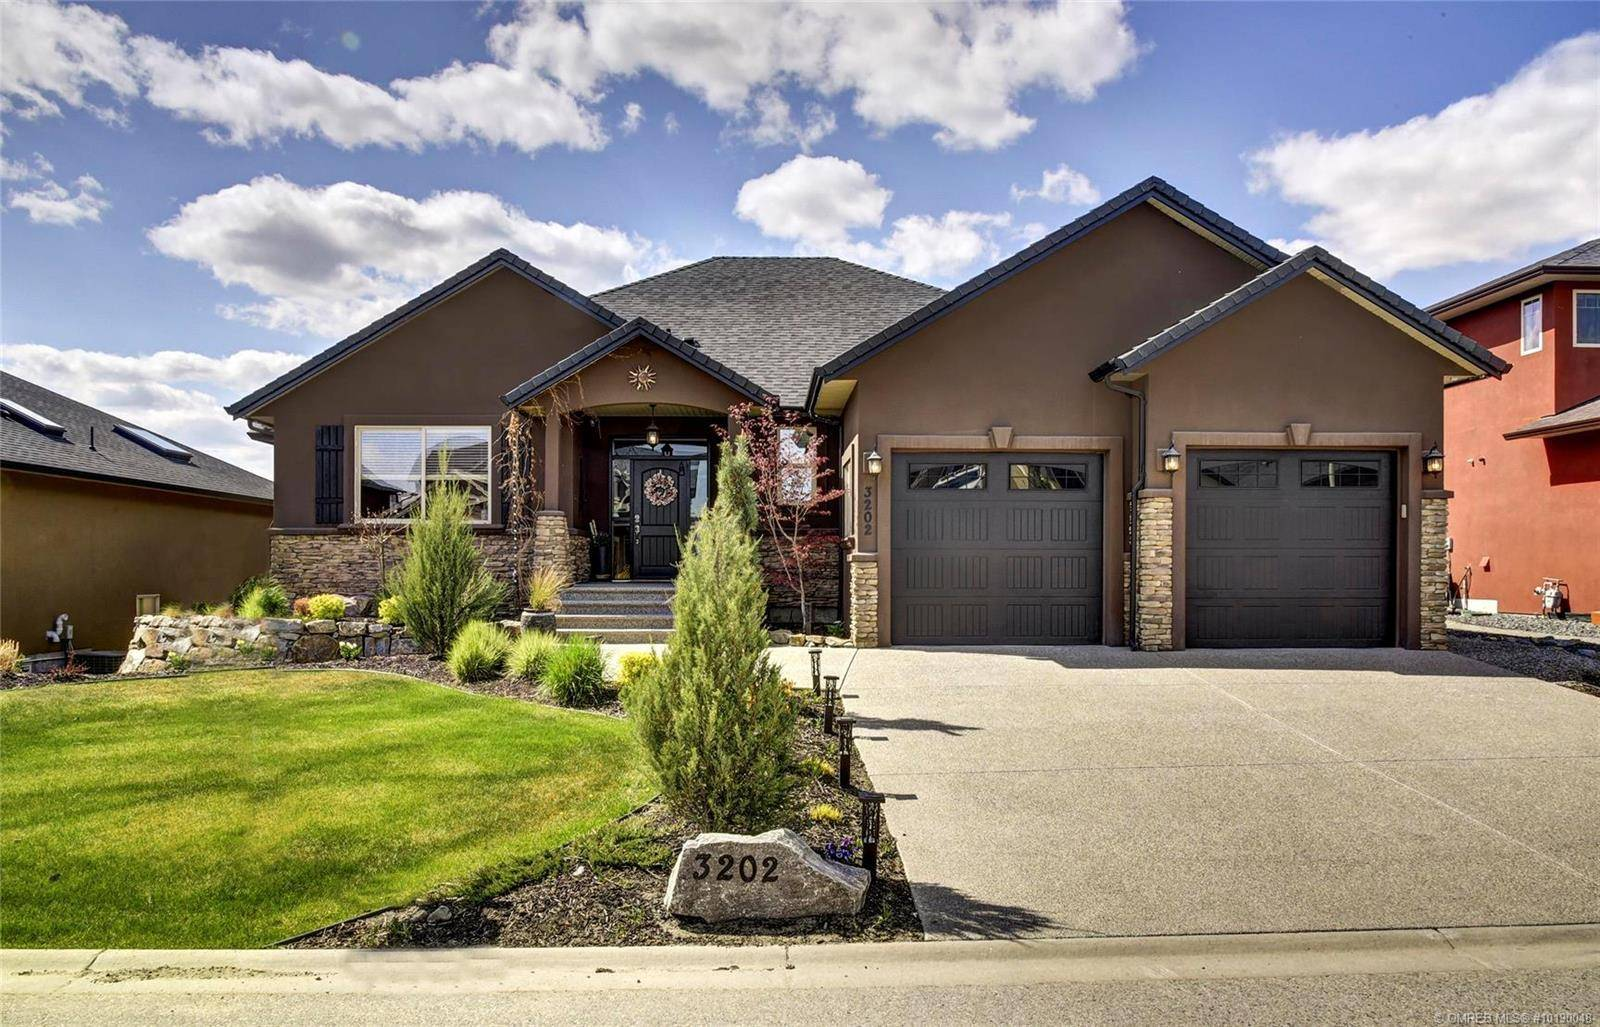 House for sale at 3202 Malbec Cres West Kelowna British Columbia - MLS: 10190048